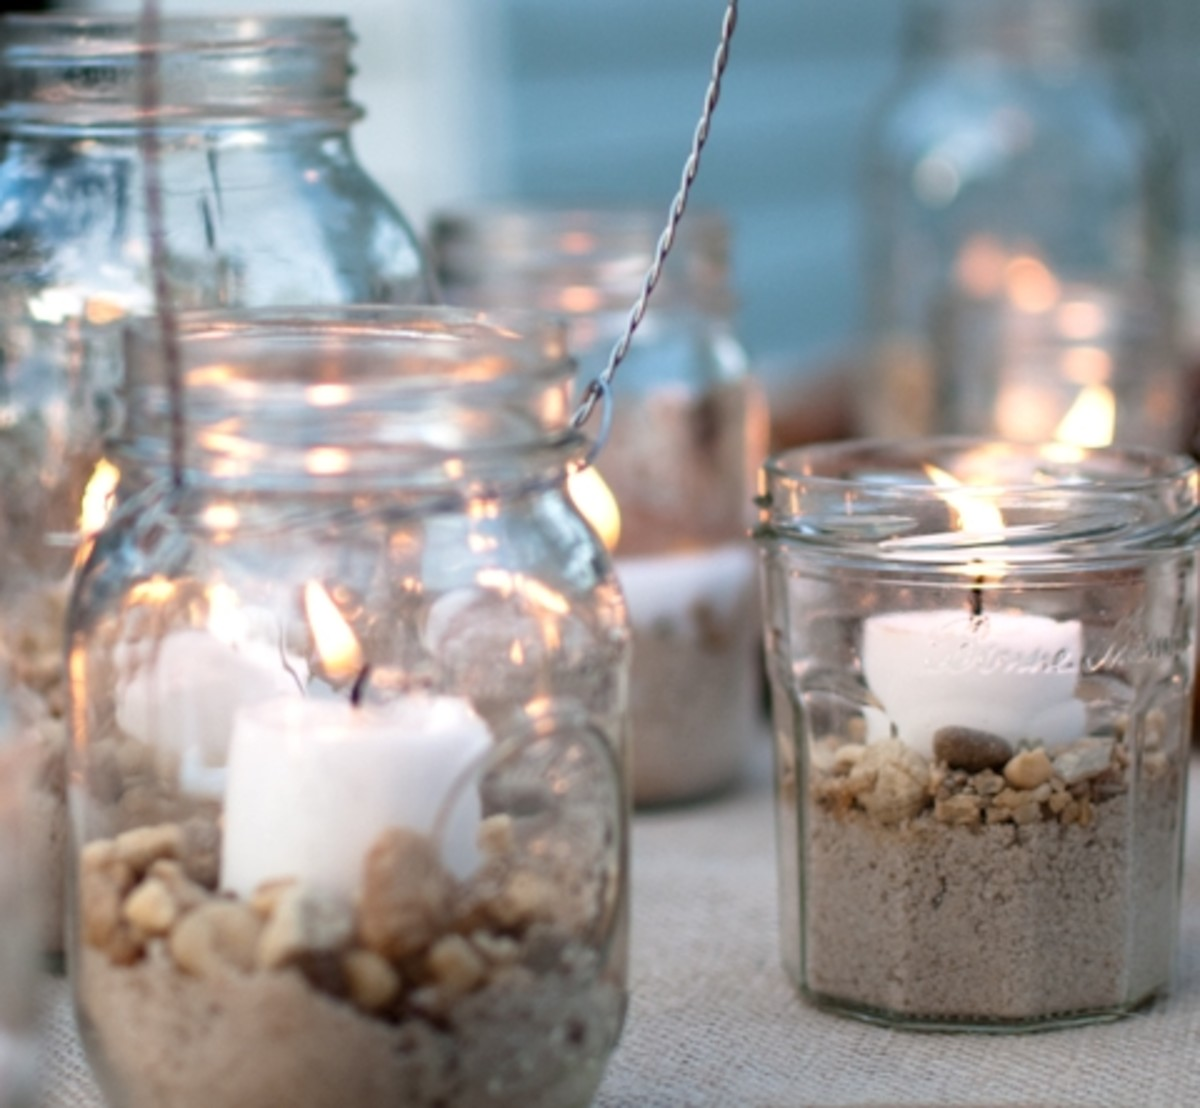 You can arrange candles in mason jars on a flat surface or hang them in your bedroom.